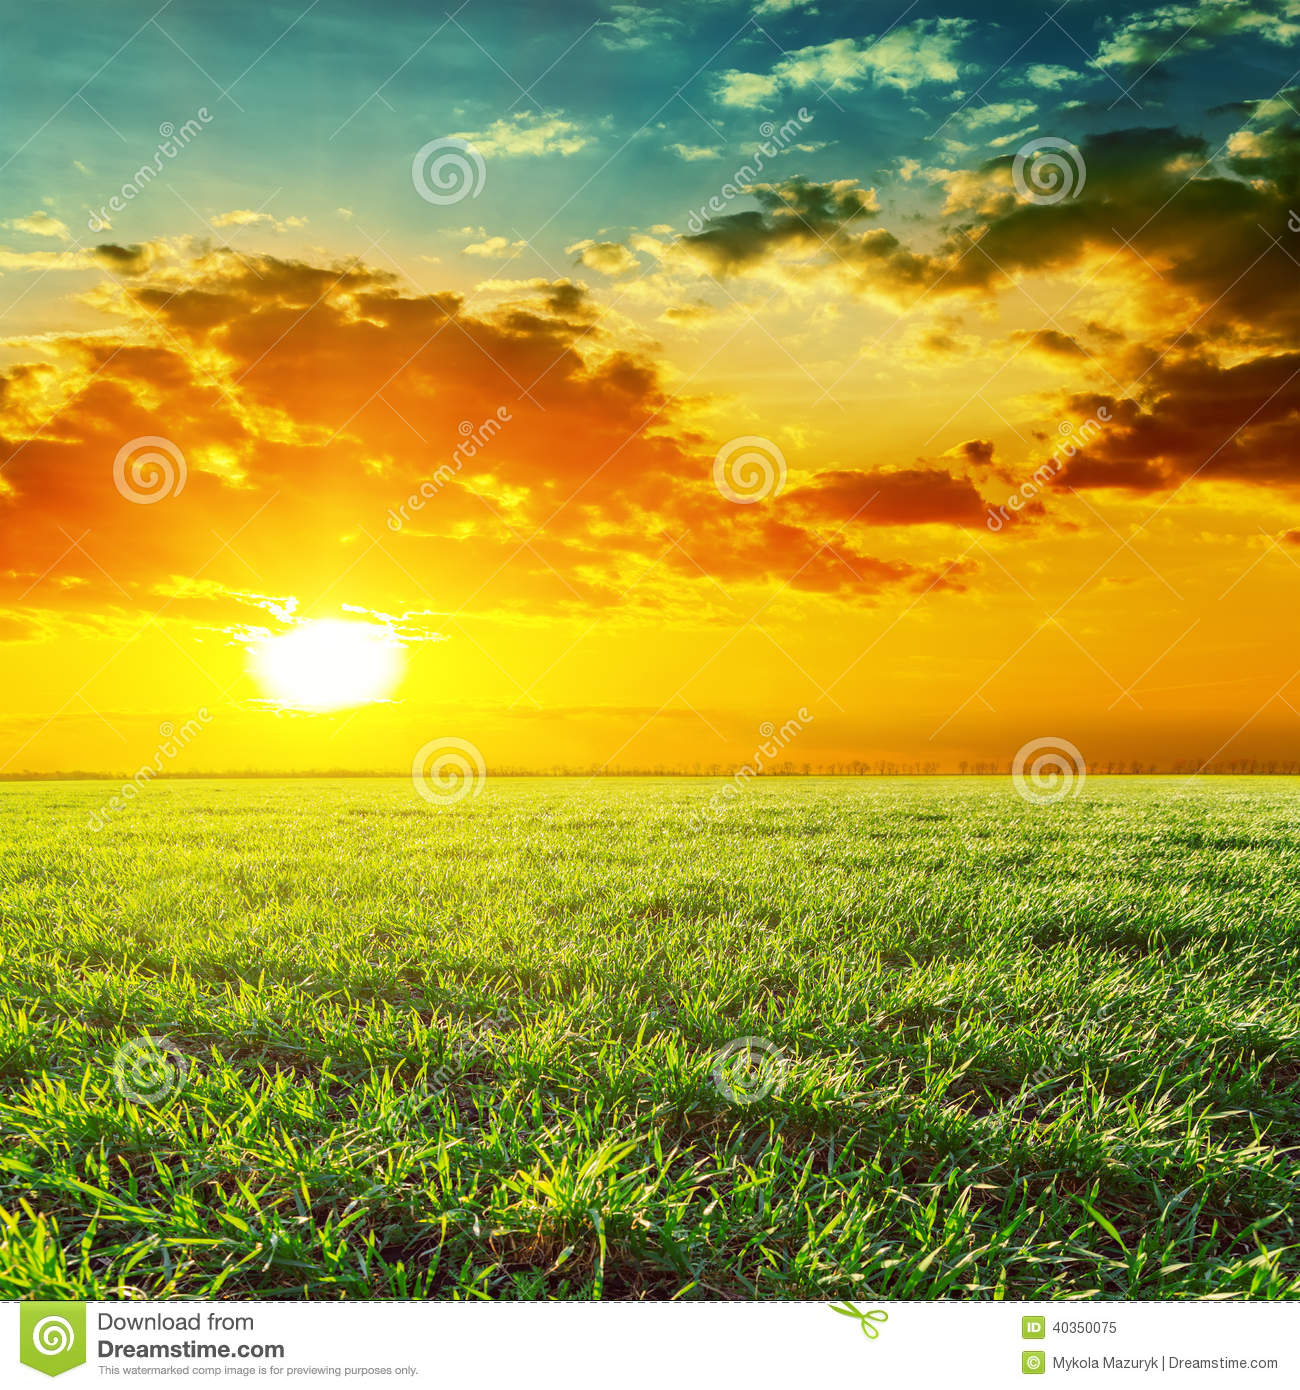 Sunset Grass Field Clipart.